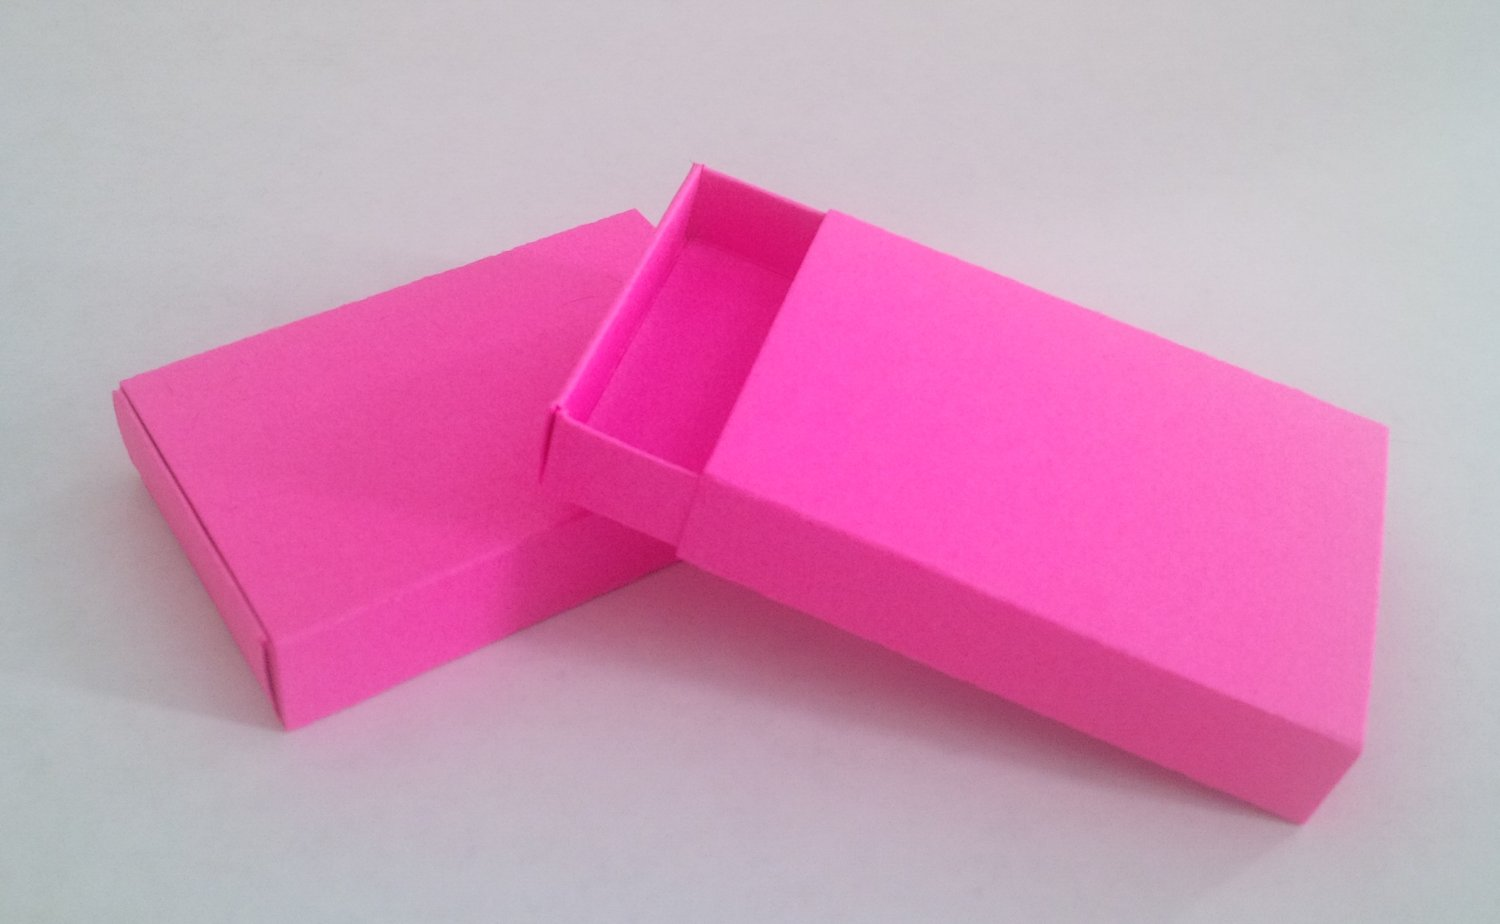 10 small blank pink fuschia matchboxes great color for for Blank matchboxes for crafts